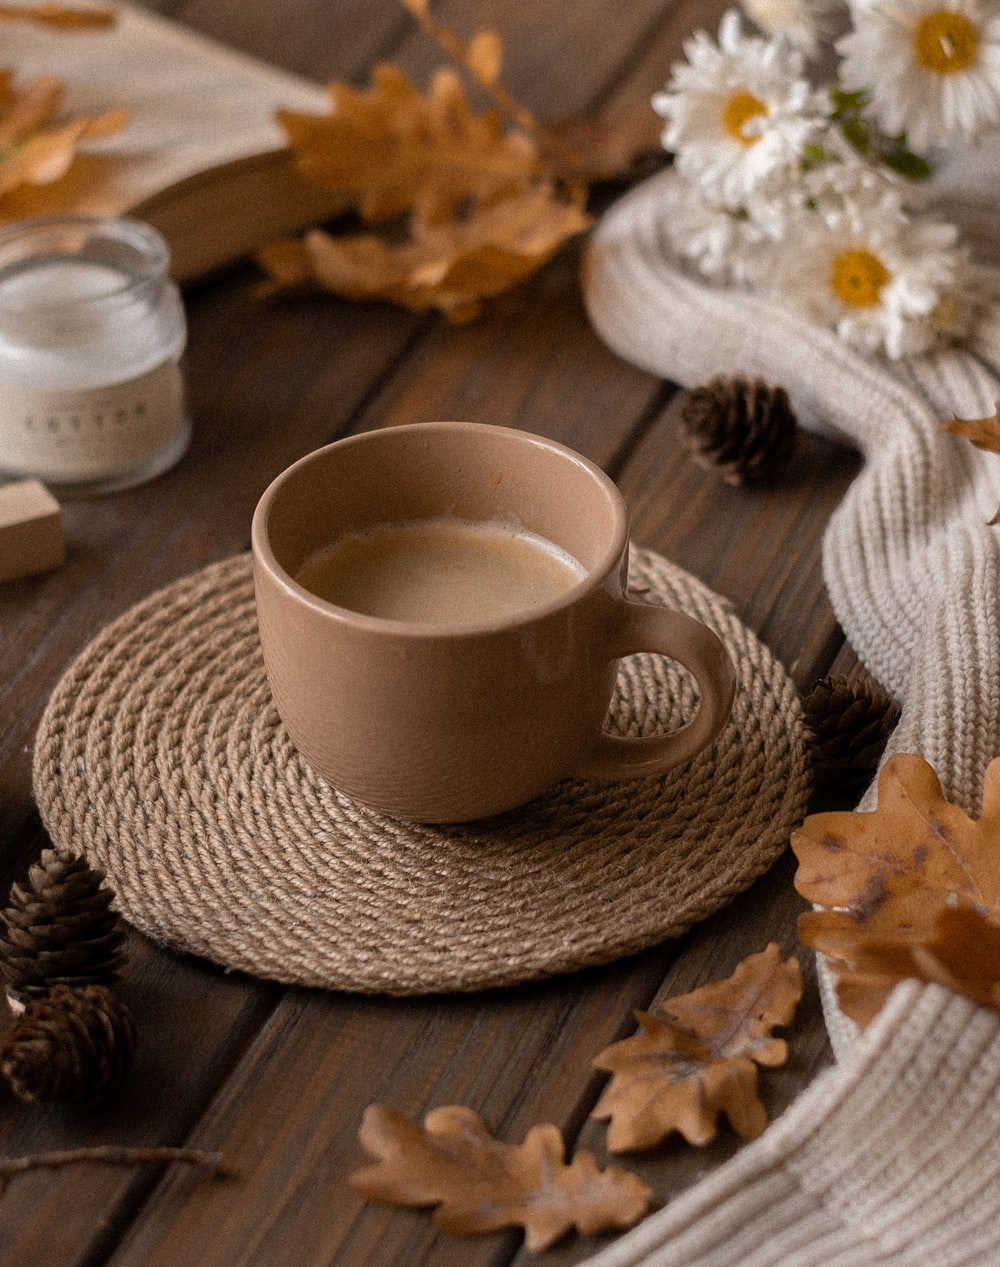 white ceramic cup and saucer